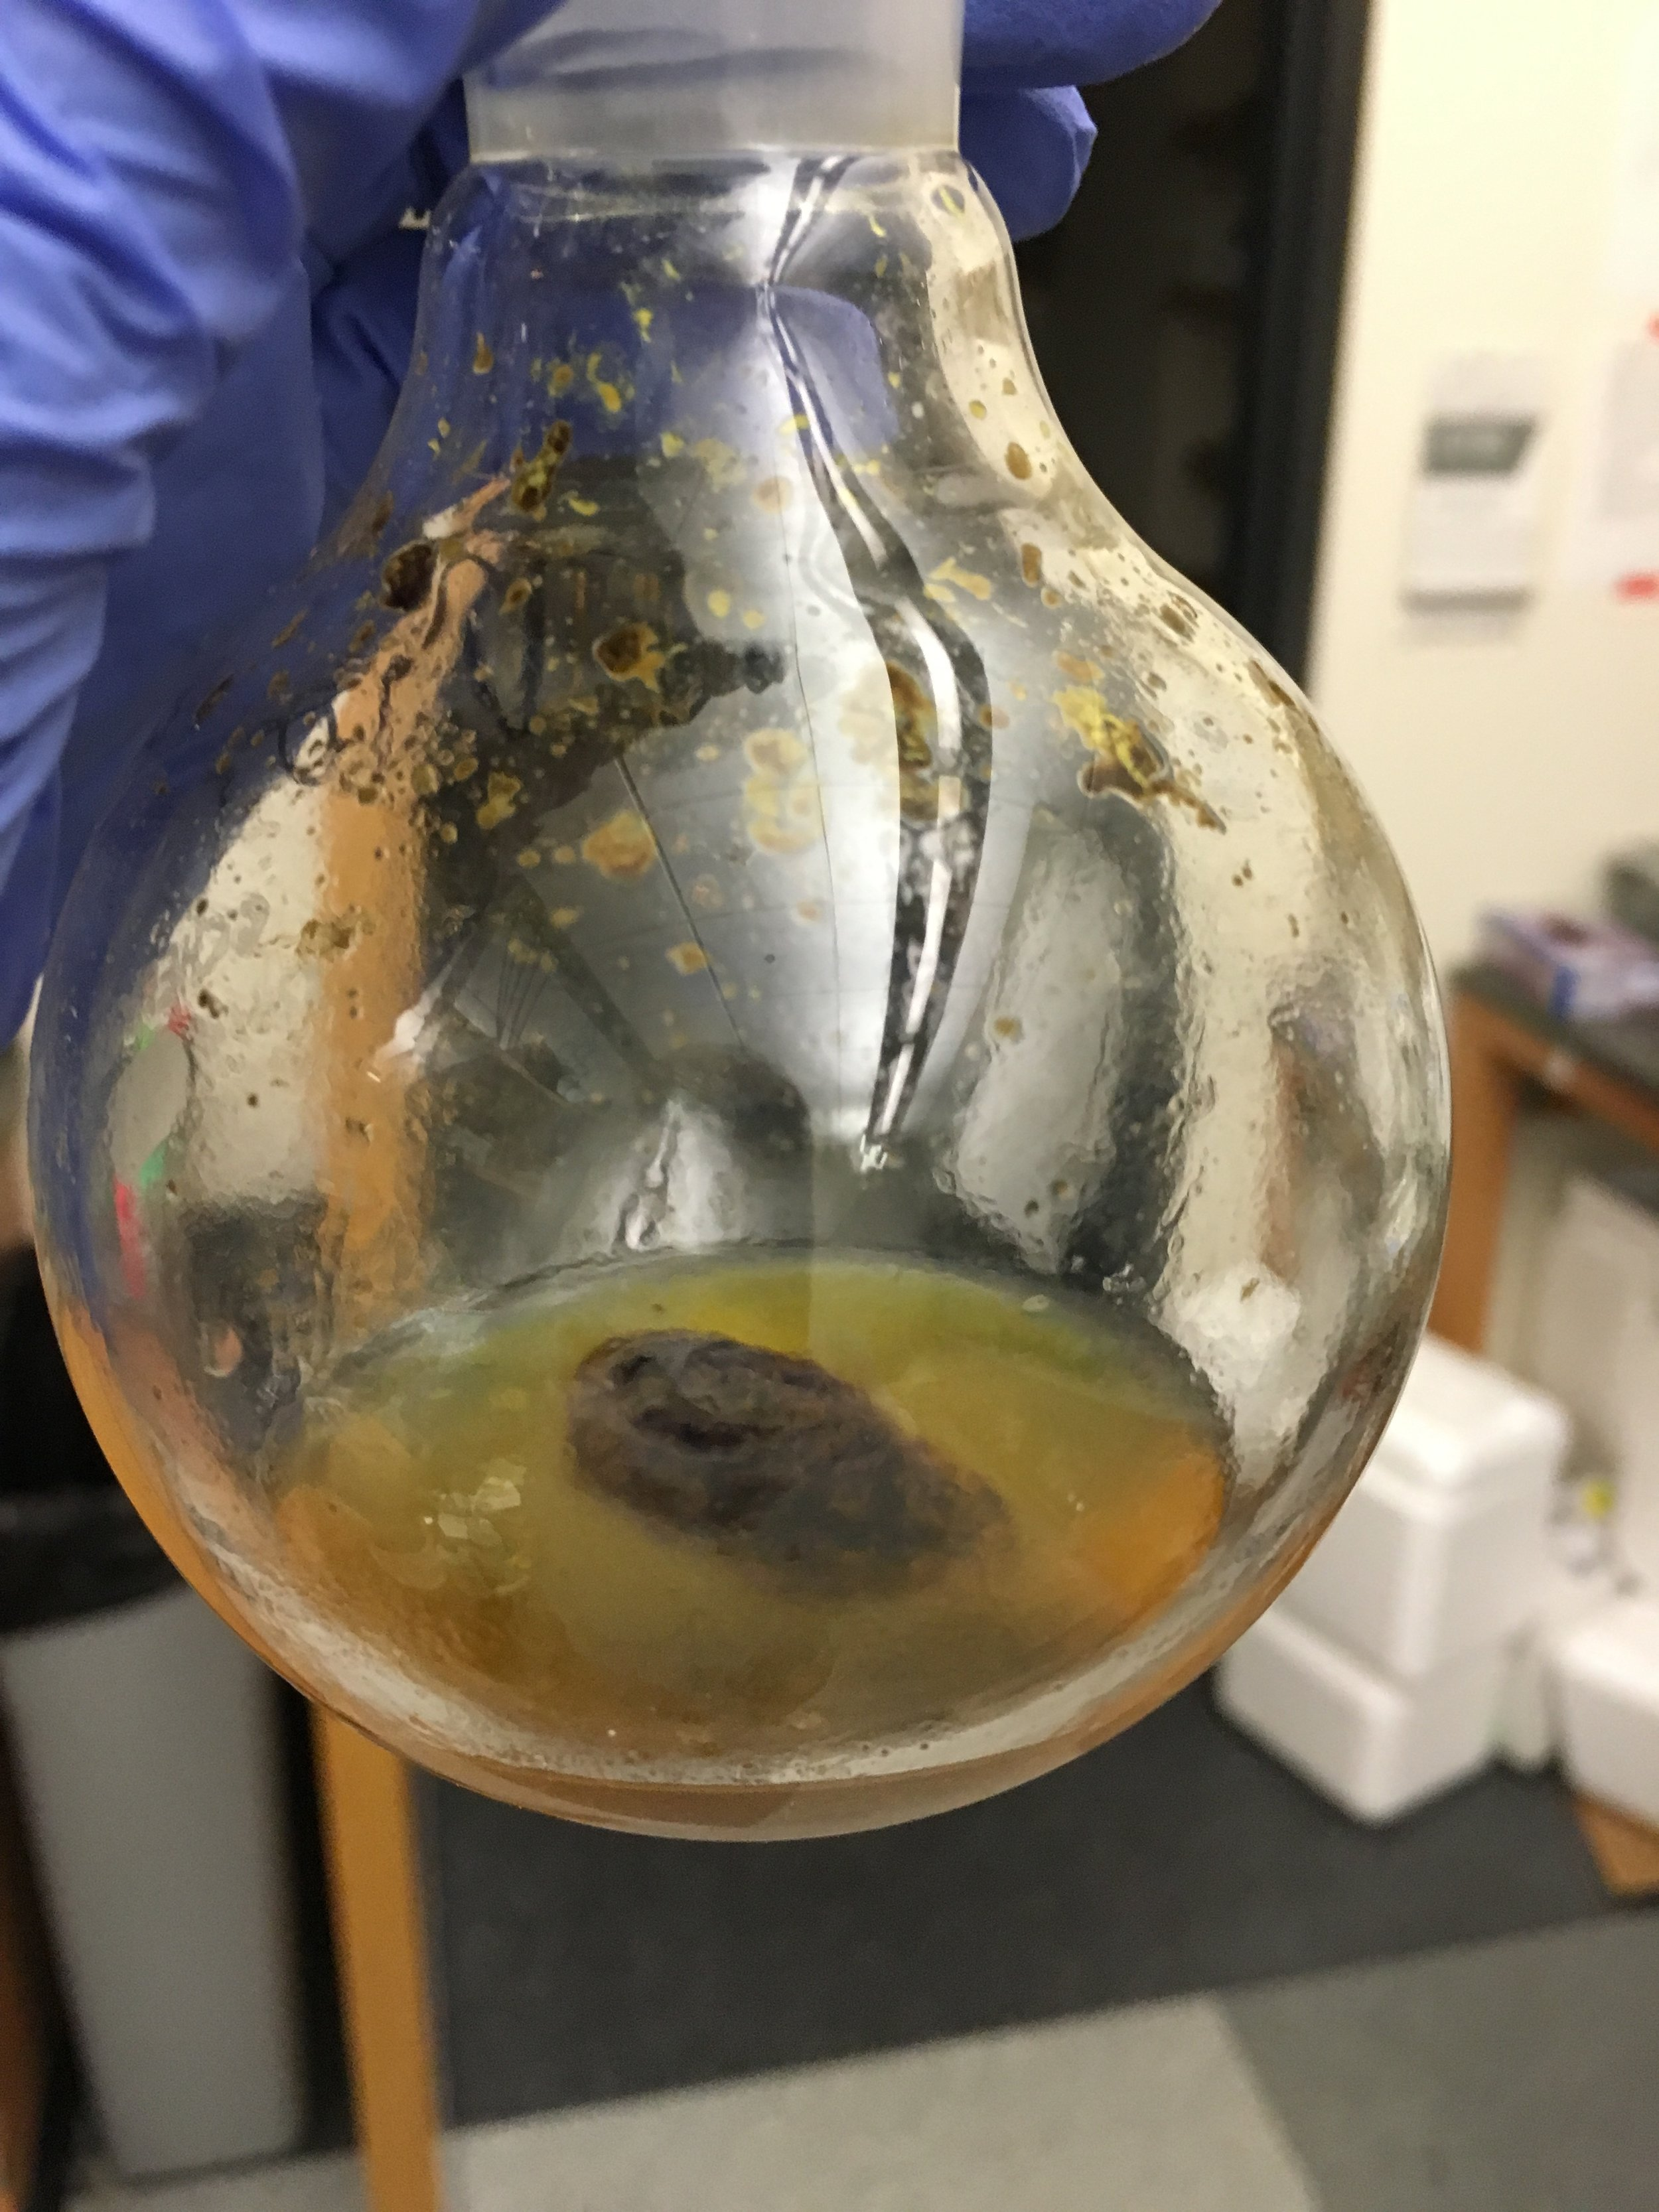 Synthesis can be super gross looking. After a couple weeks of extended washing, this nasty nugget turned out to be the thing I was trying to synthesize.